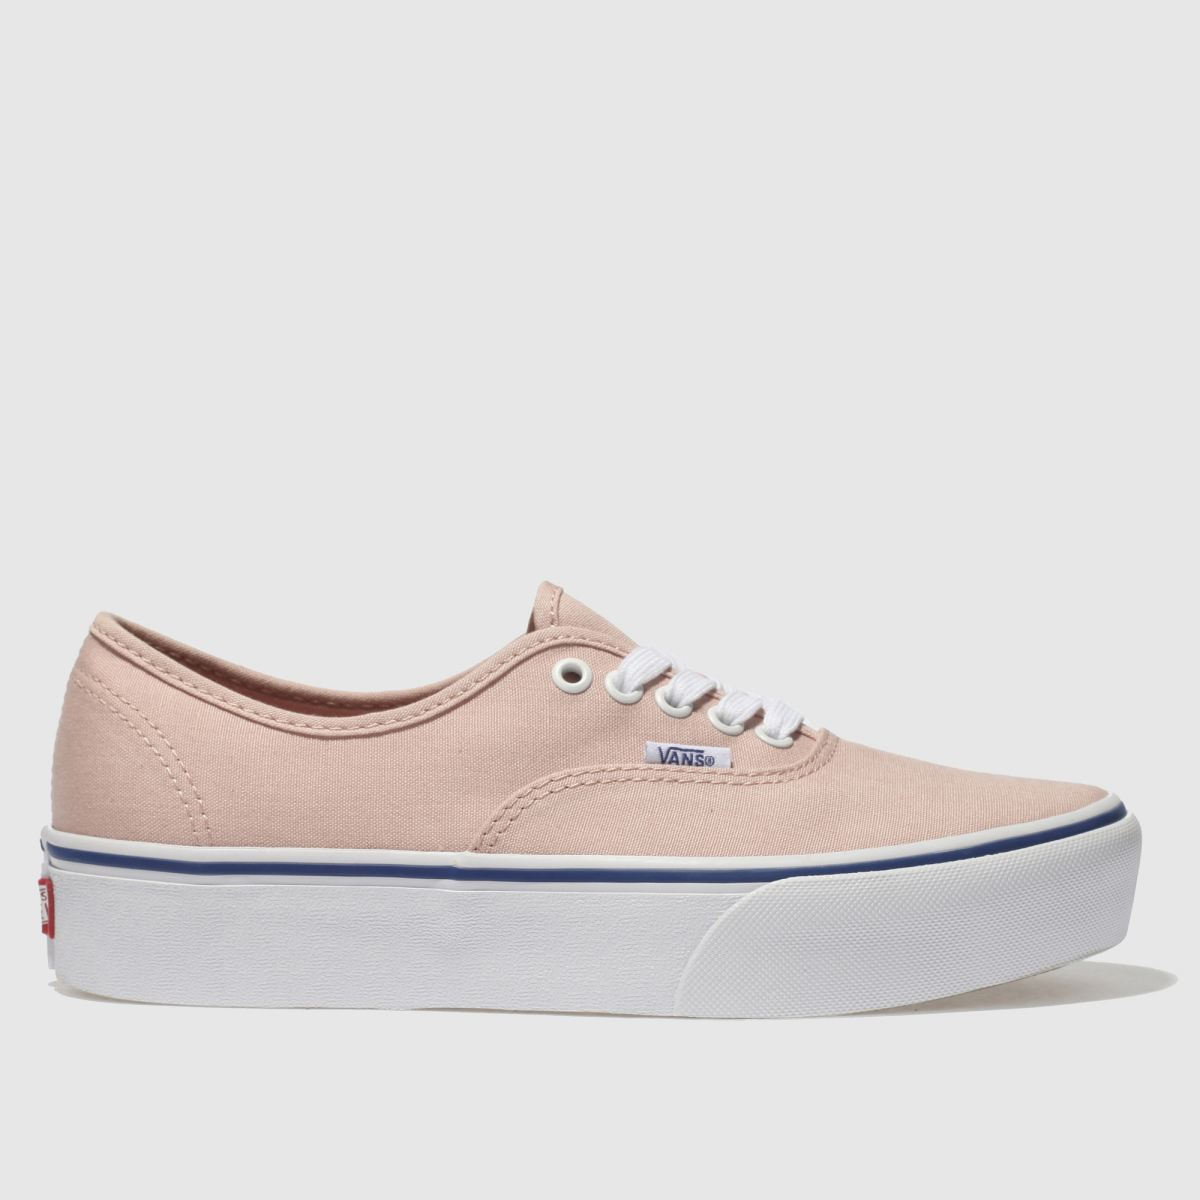 Vans AUTHENTIC PLATFORM 2.0 - Trainers - pink QlhISDIb